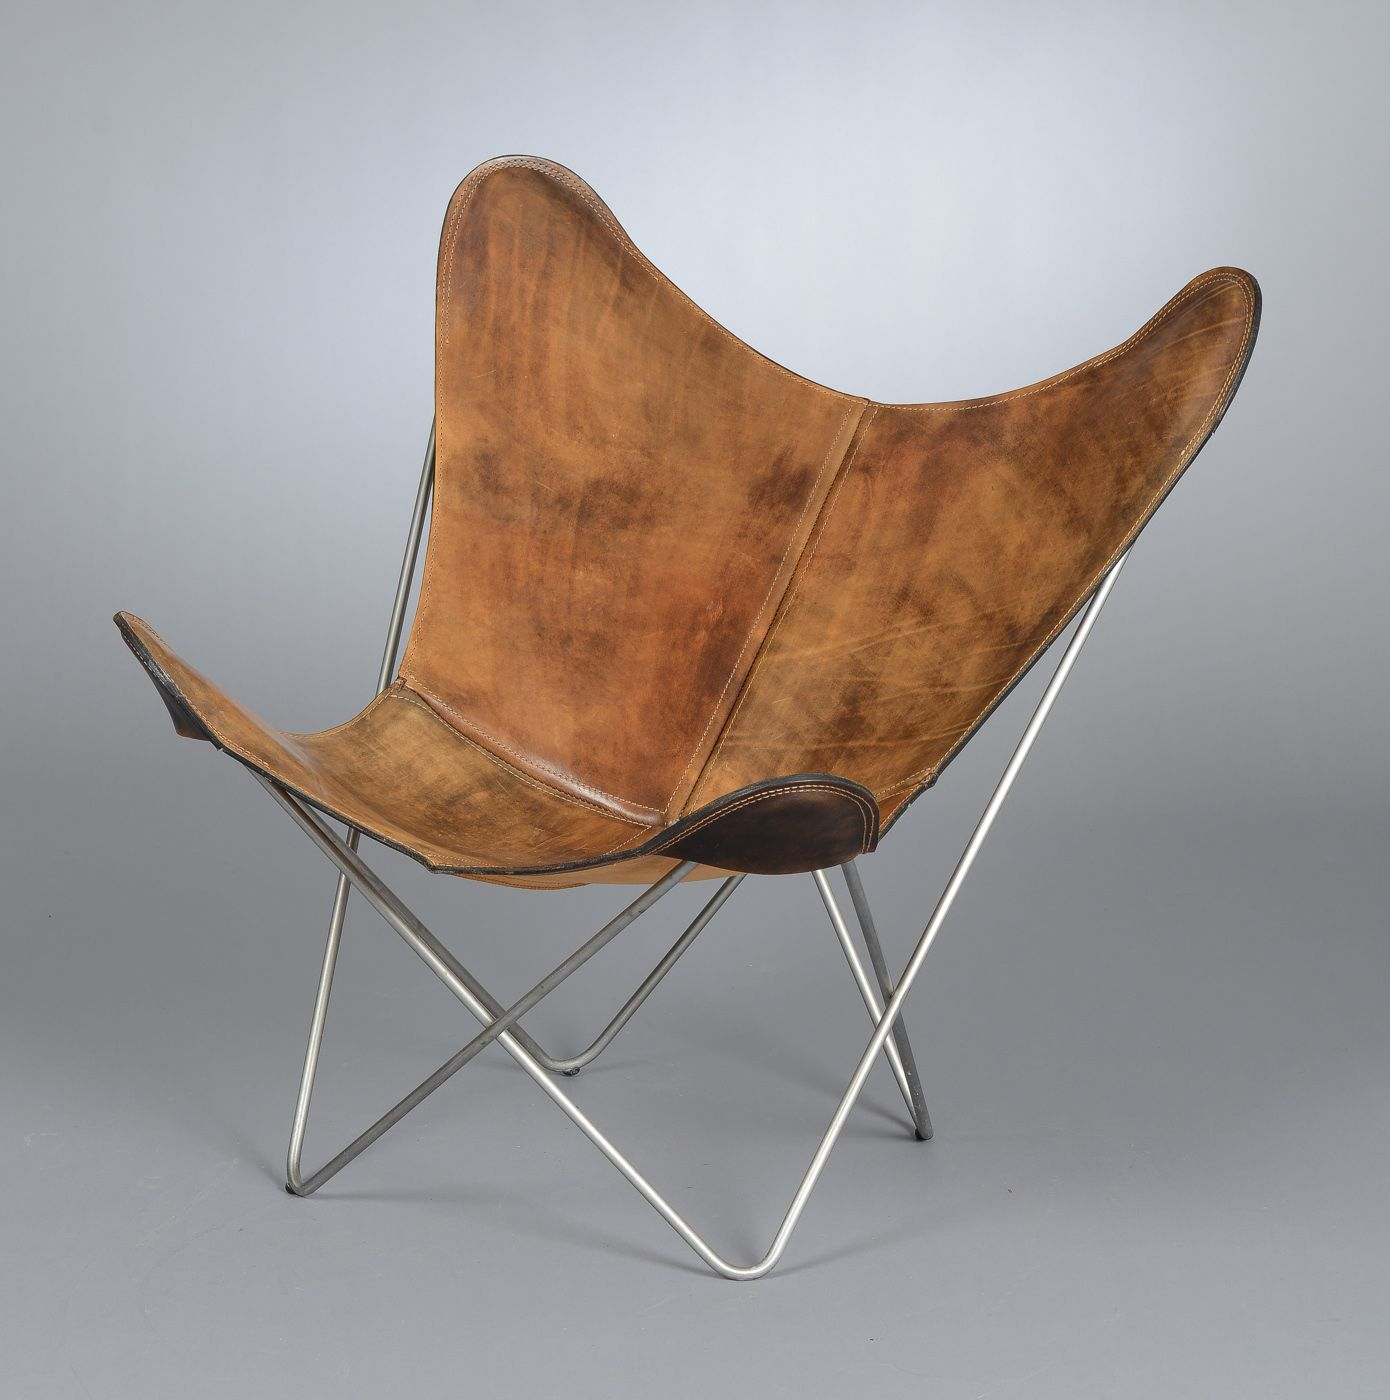 The Original Butterfly Chair (BKF Chair) Was Designed By The Austral Group  In Buenos